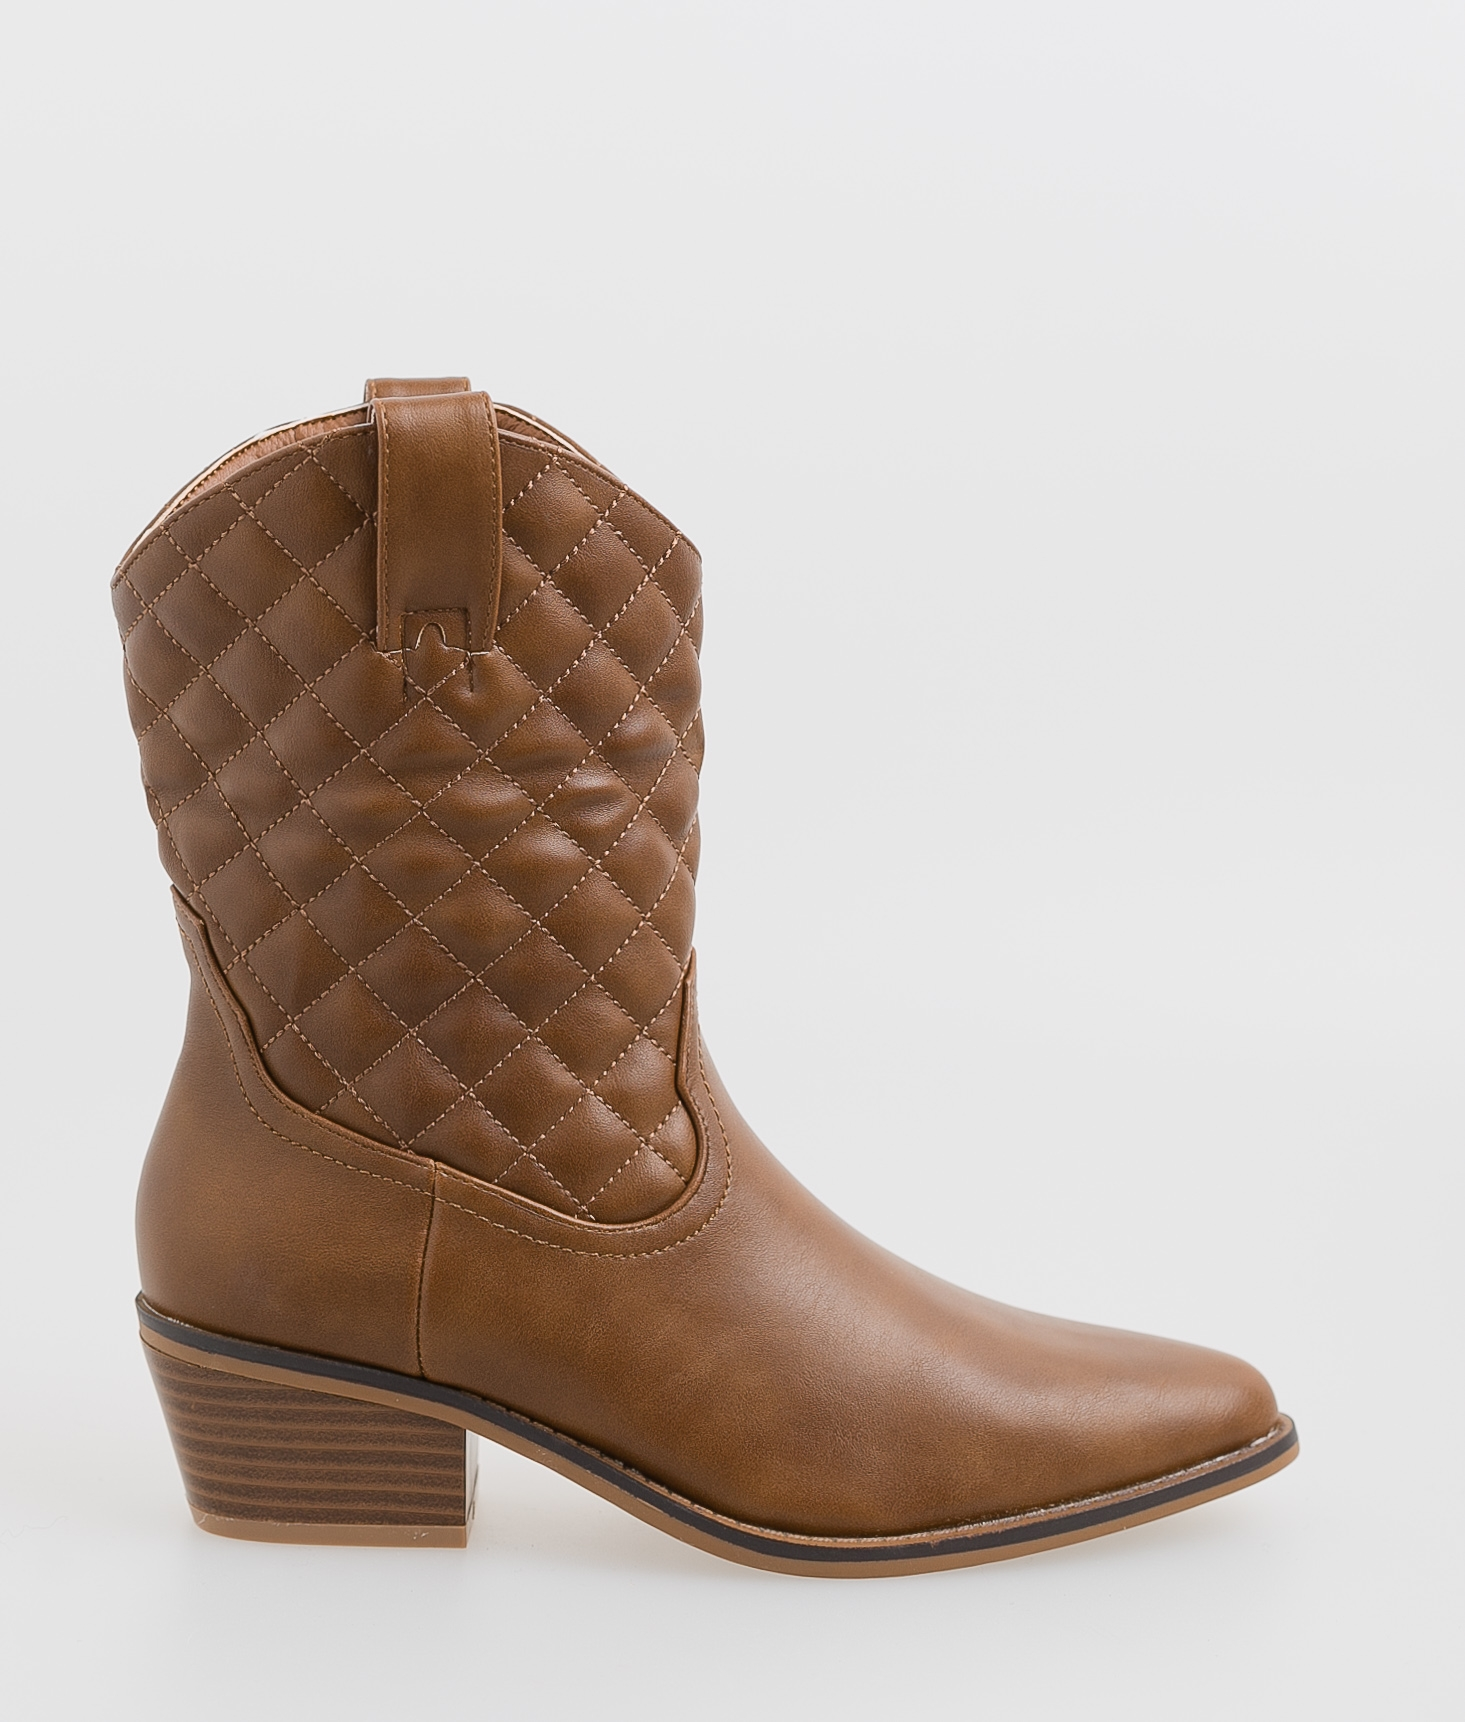 Taina Low Boot - Camel